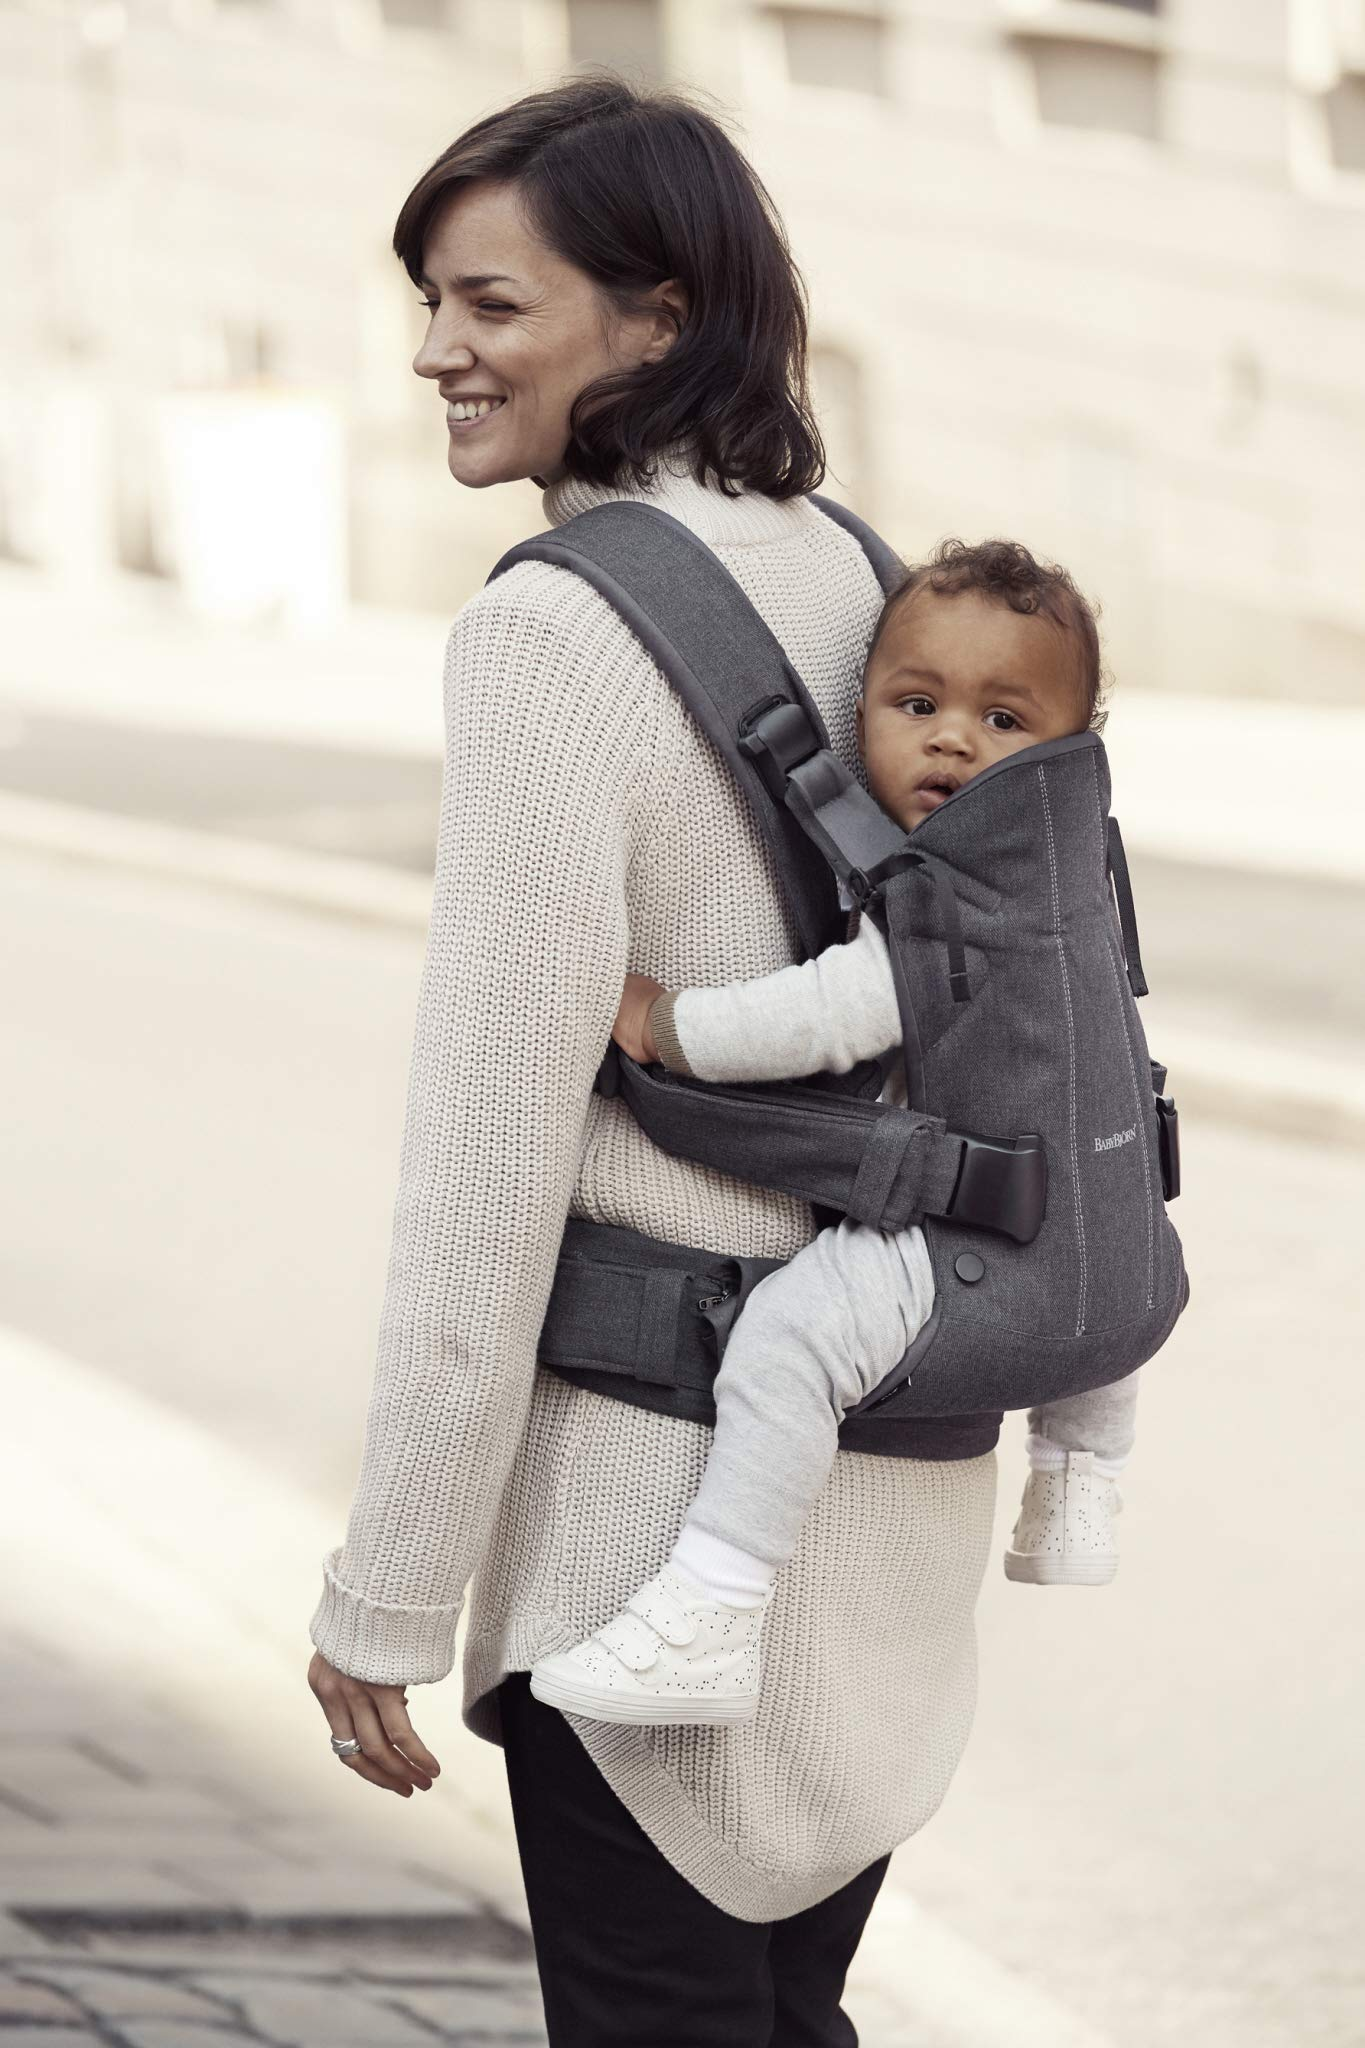 BABYBJÖRN Baby Carrier One, Cotton Mix, Denim Grey/Dark Grey, 2018 Edition Baby Bjorn The latest version with ergonomic seat width and adjustable head support Soft and durable cotton fabric that is machine washable 4 carrying positions: new-born, baby facing-in, baby facing-out and back carrying 4